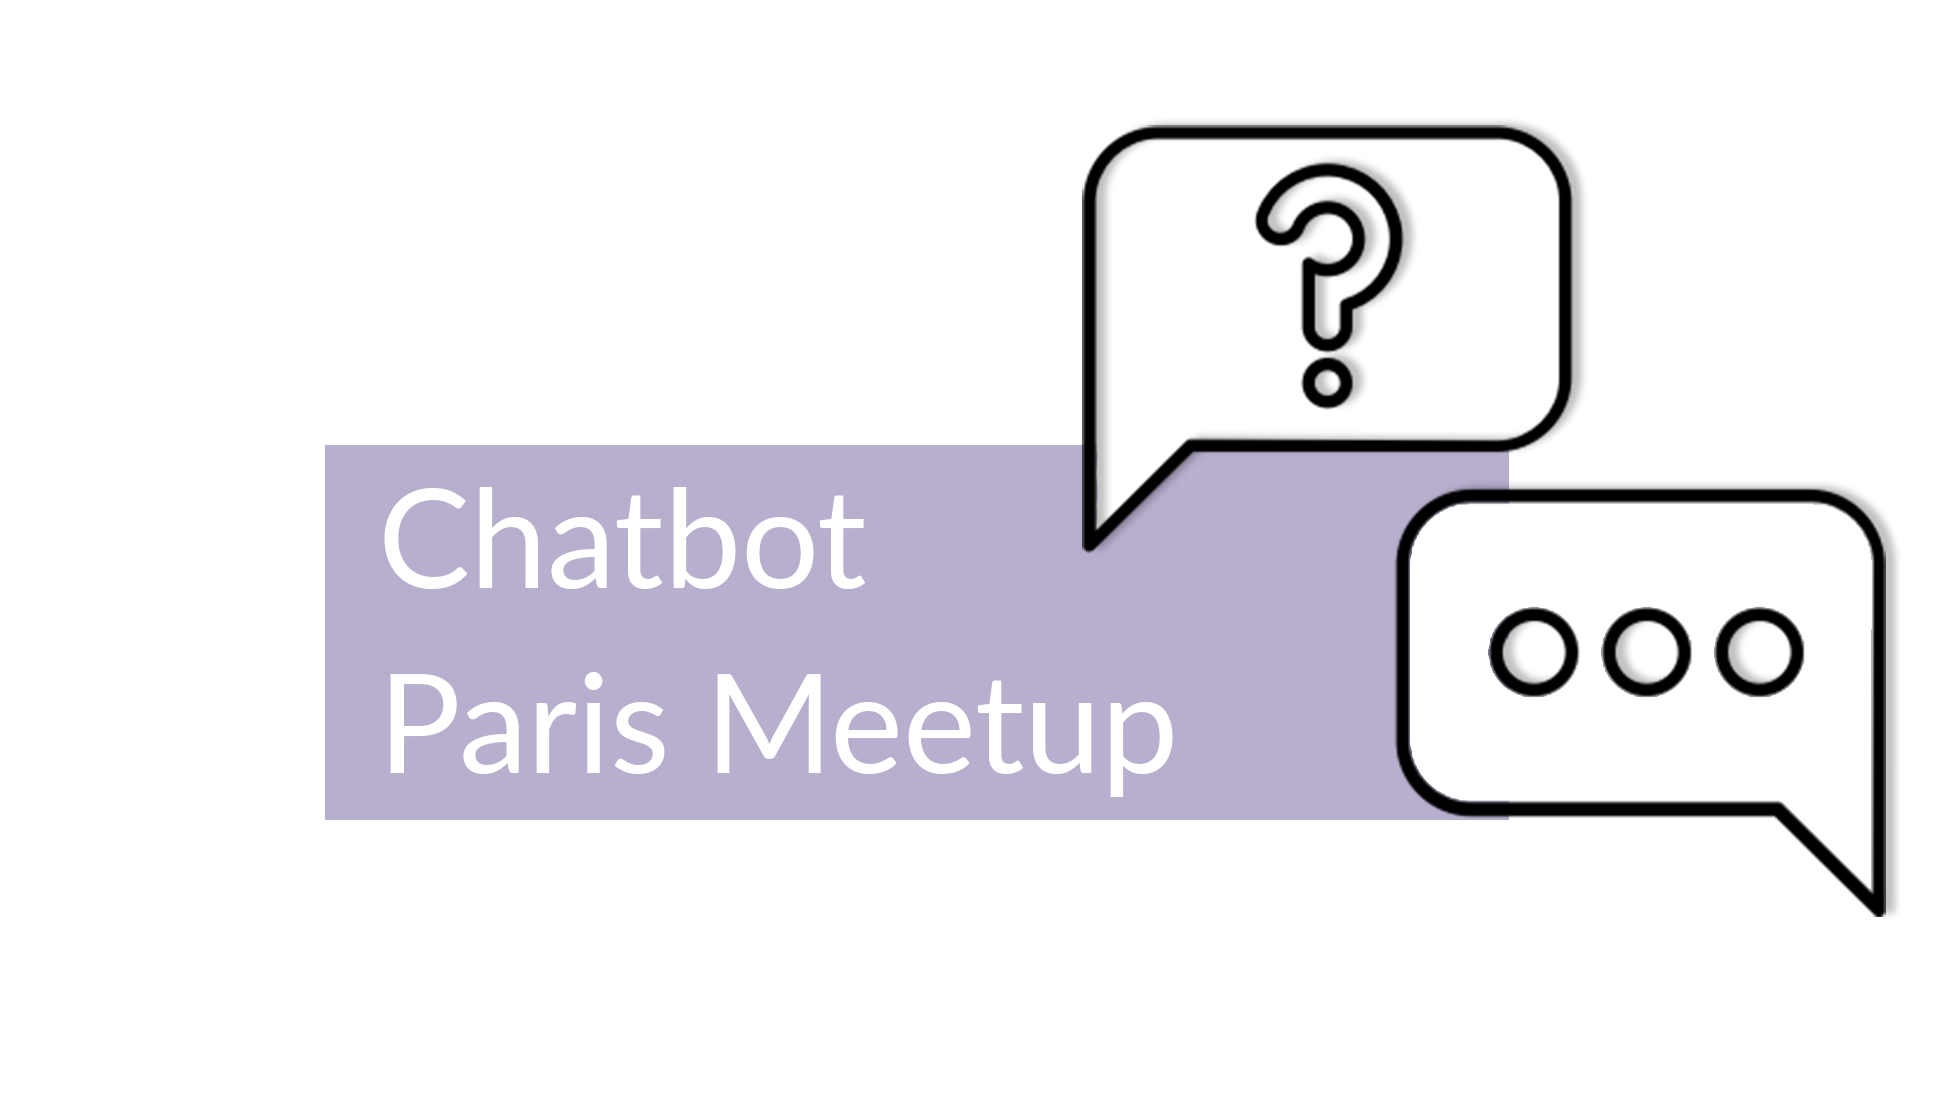 Chatbots Paris Meetup